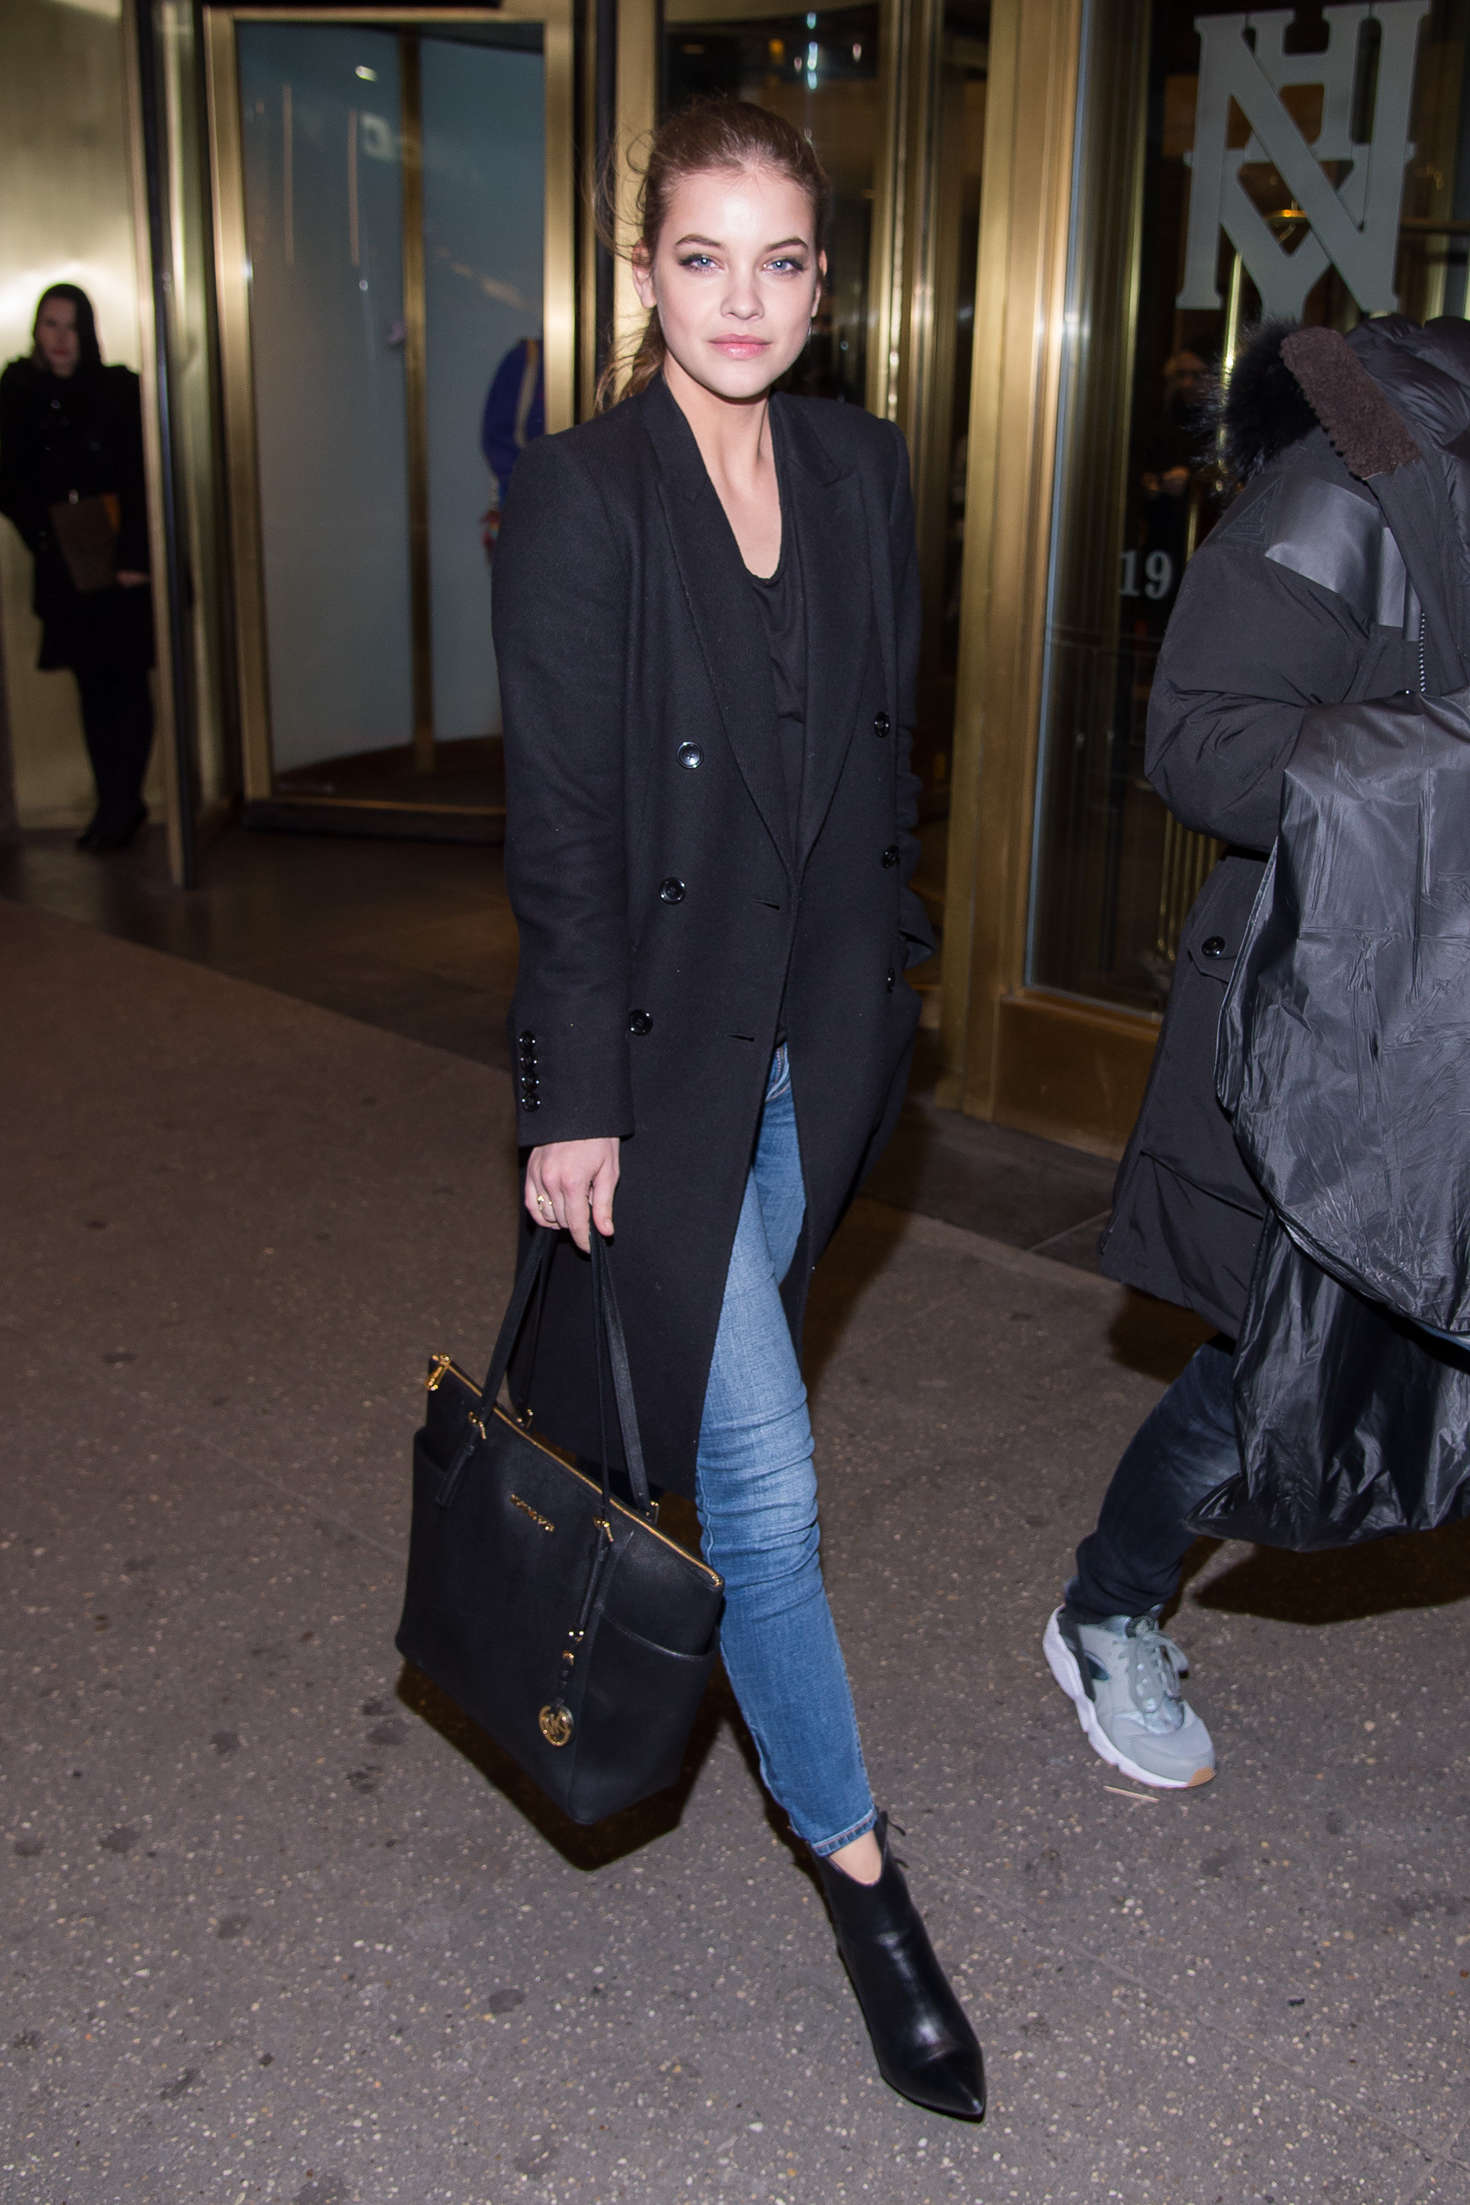 Barbara Palvin - Leaving a hotel in NYC